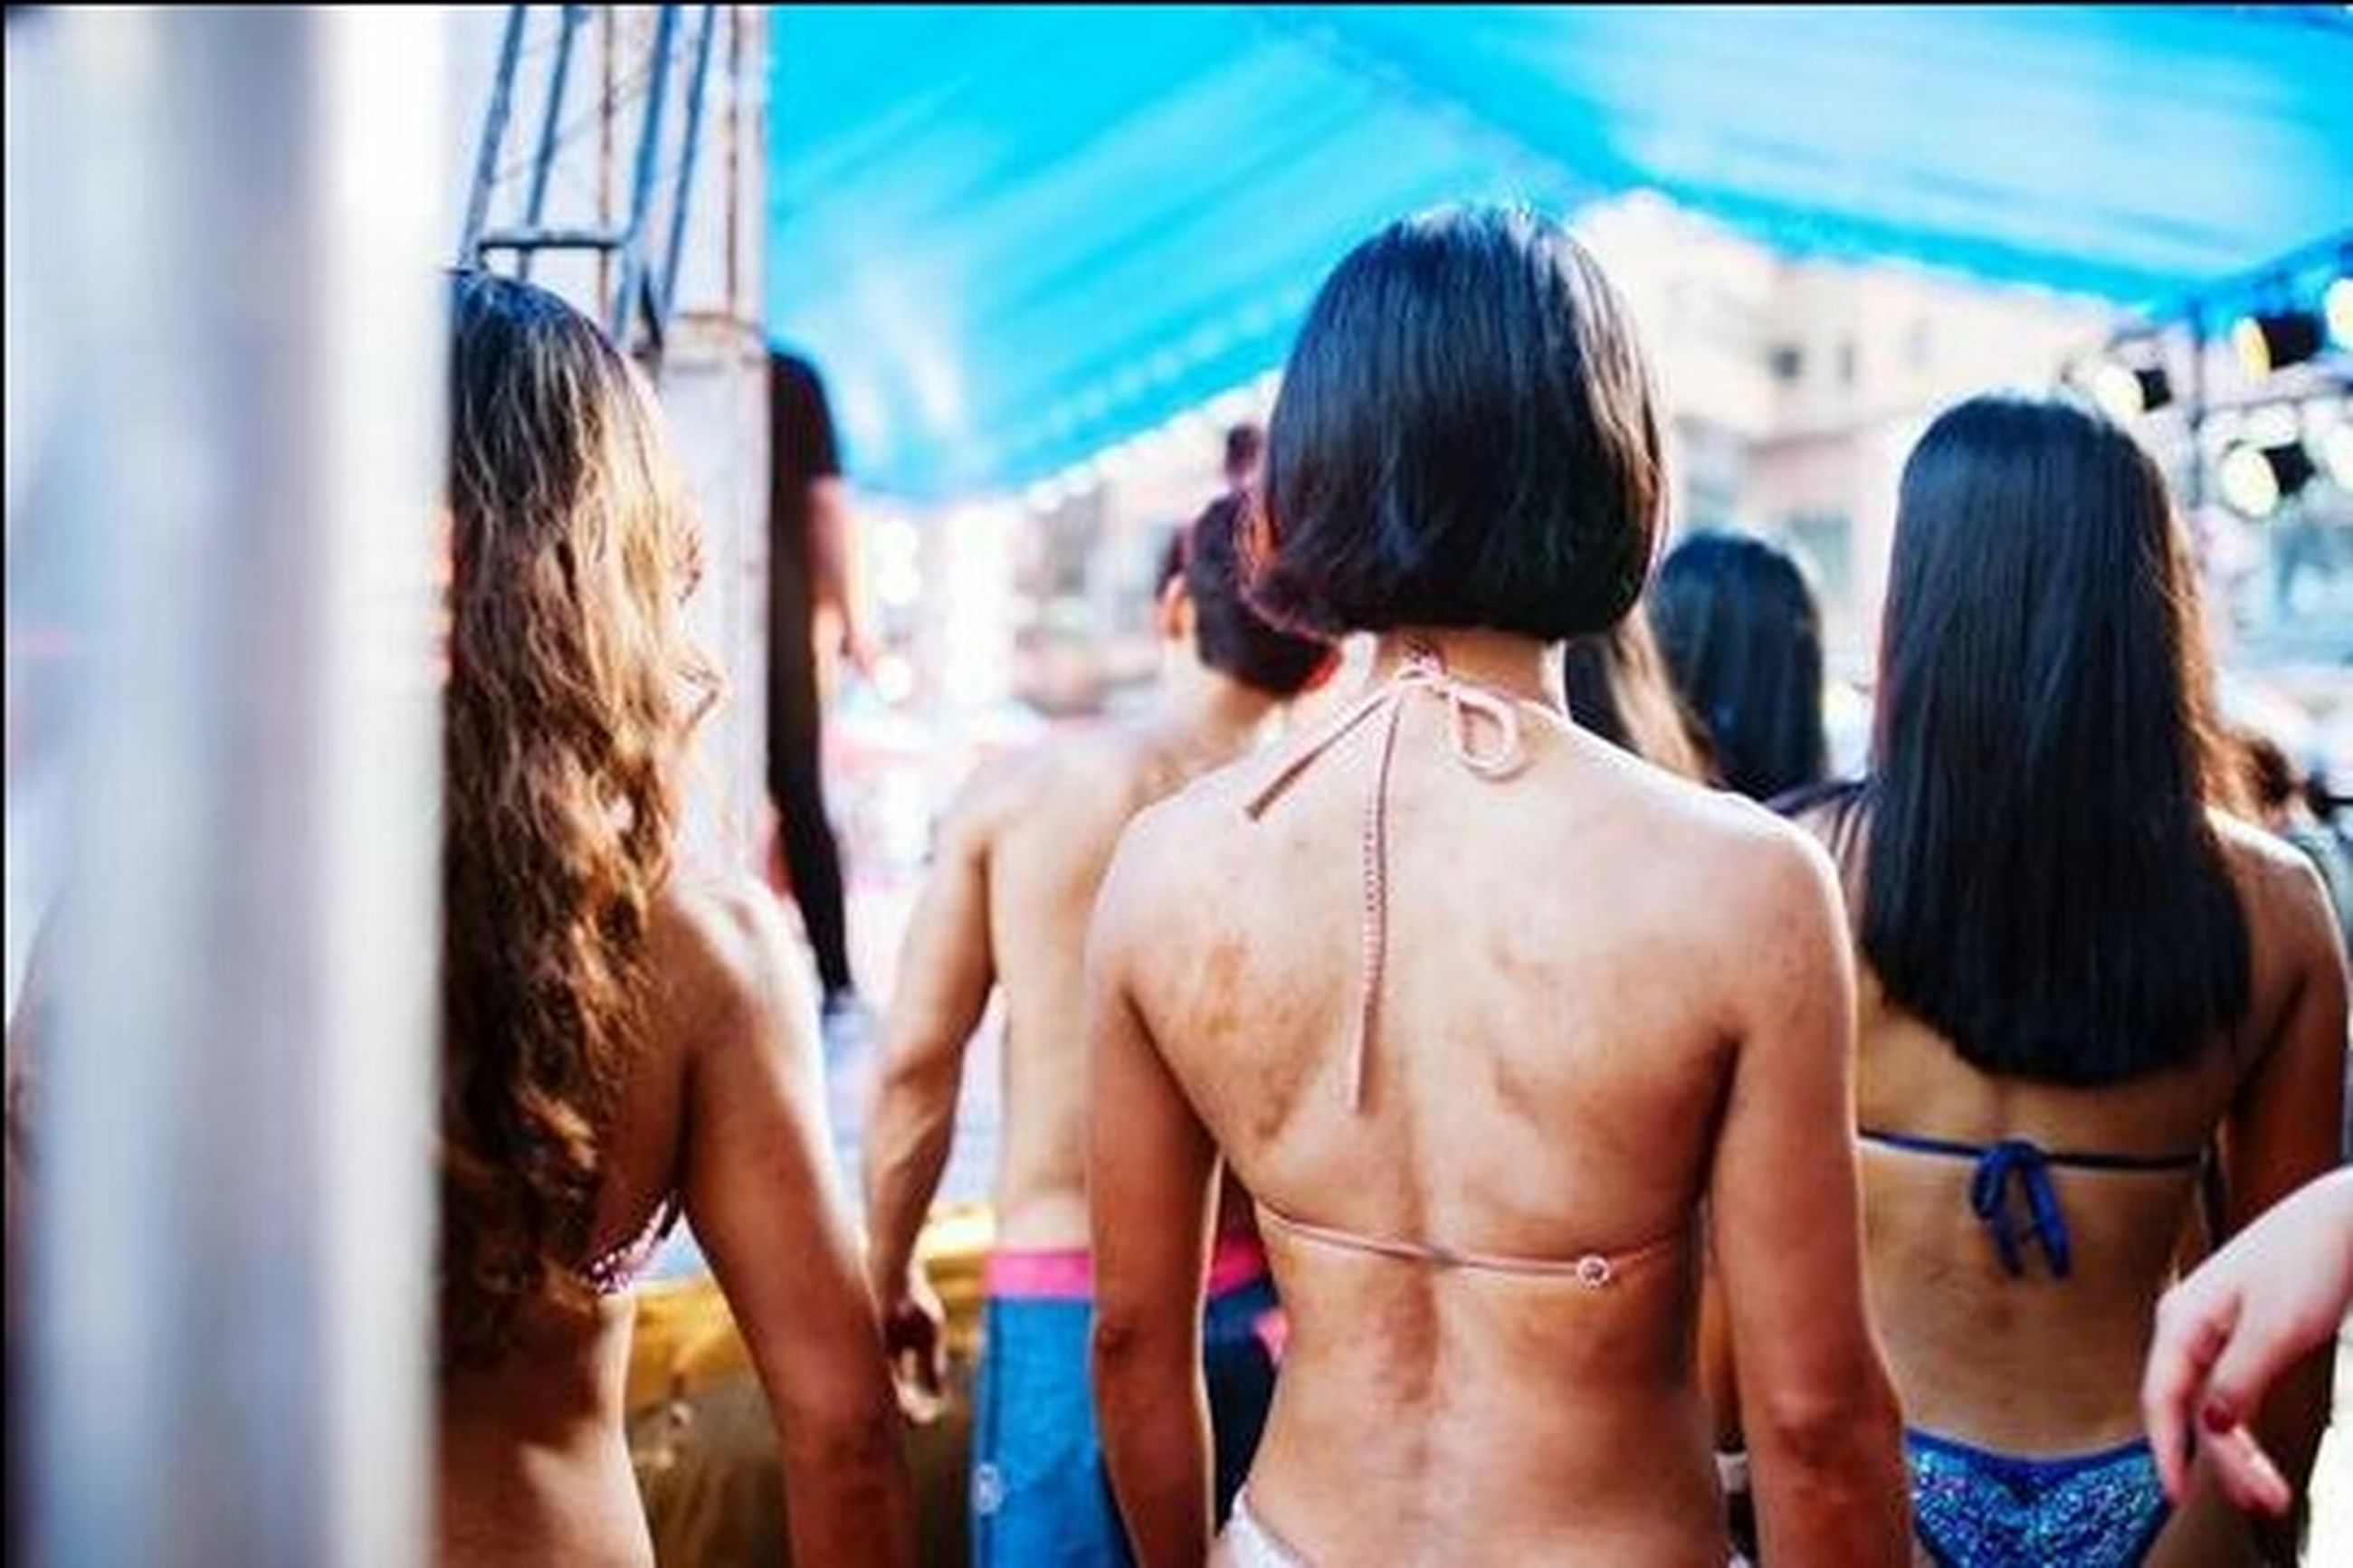 rear view, adult, young adult, women, group of people, trip, clothing, vacations, people, friendship, human back, togetherness, event, emotion, young women, hair, summer, brown hair, standing, fun, hairstyle, semi-dress